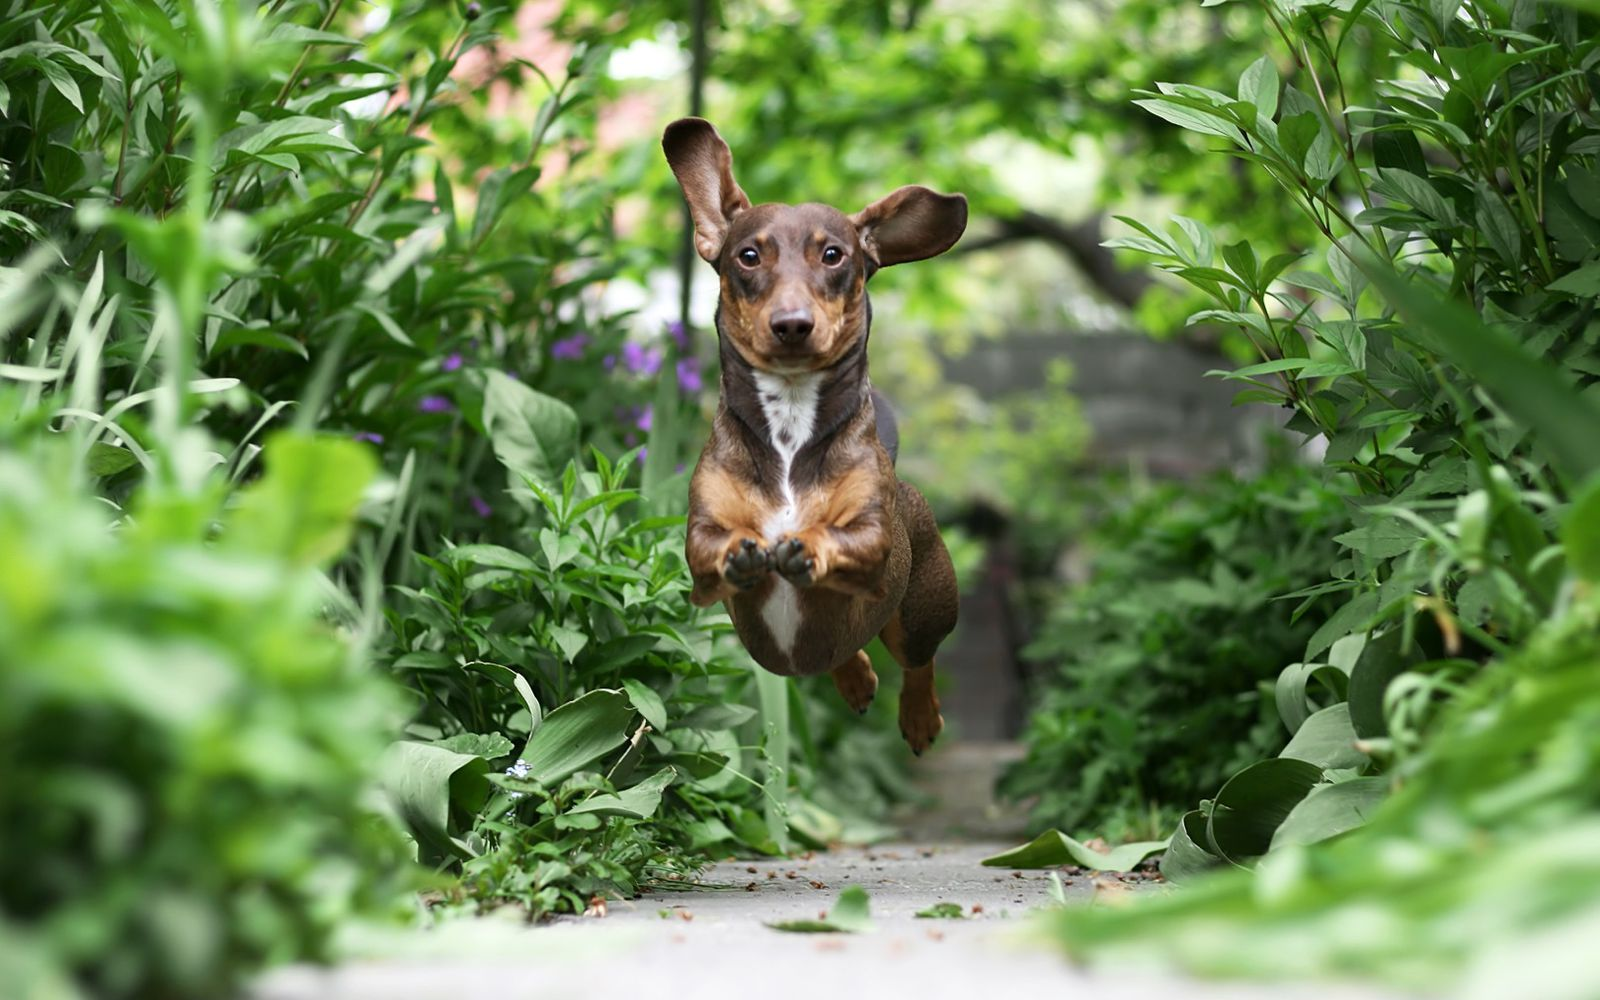 Dachshund (Smooth Haired) - Lifestyle